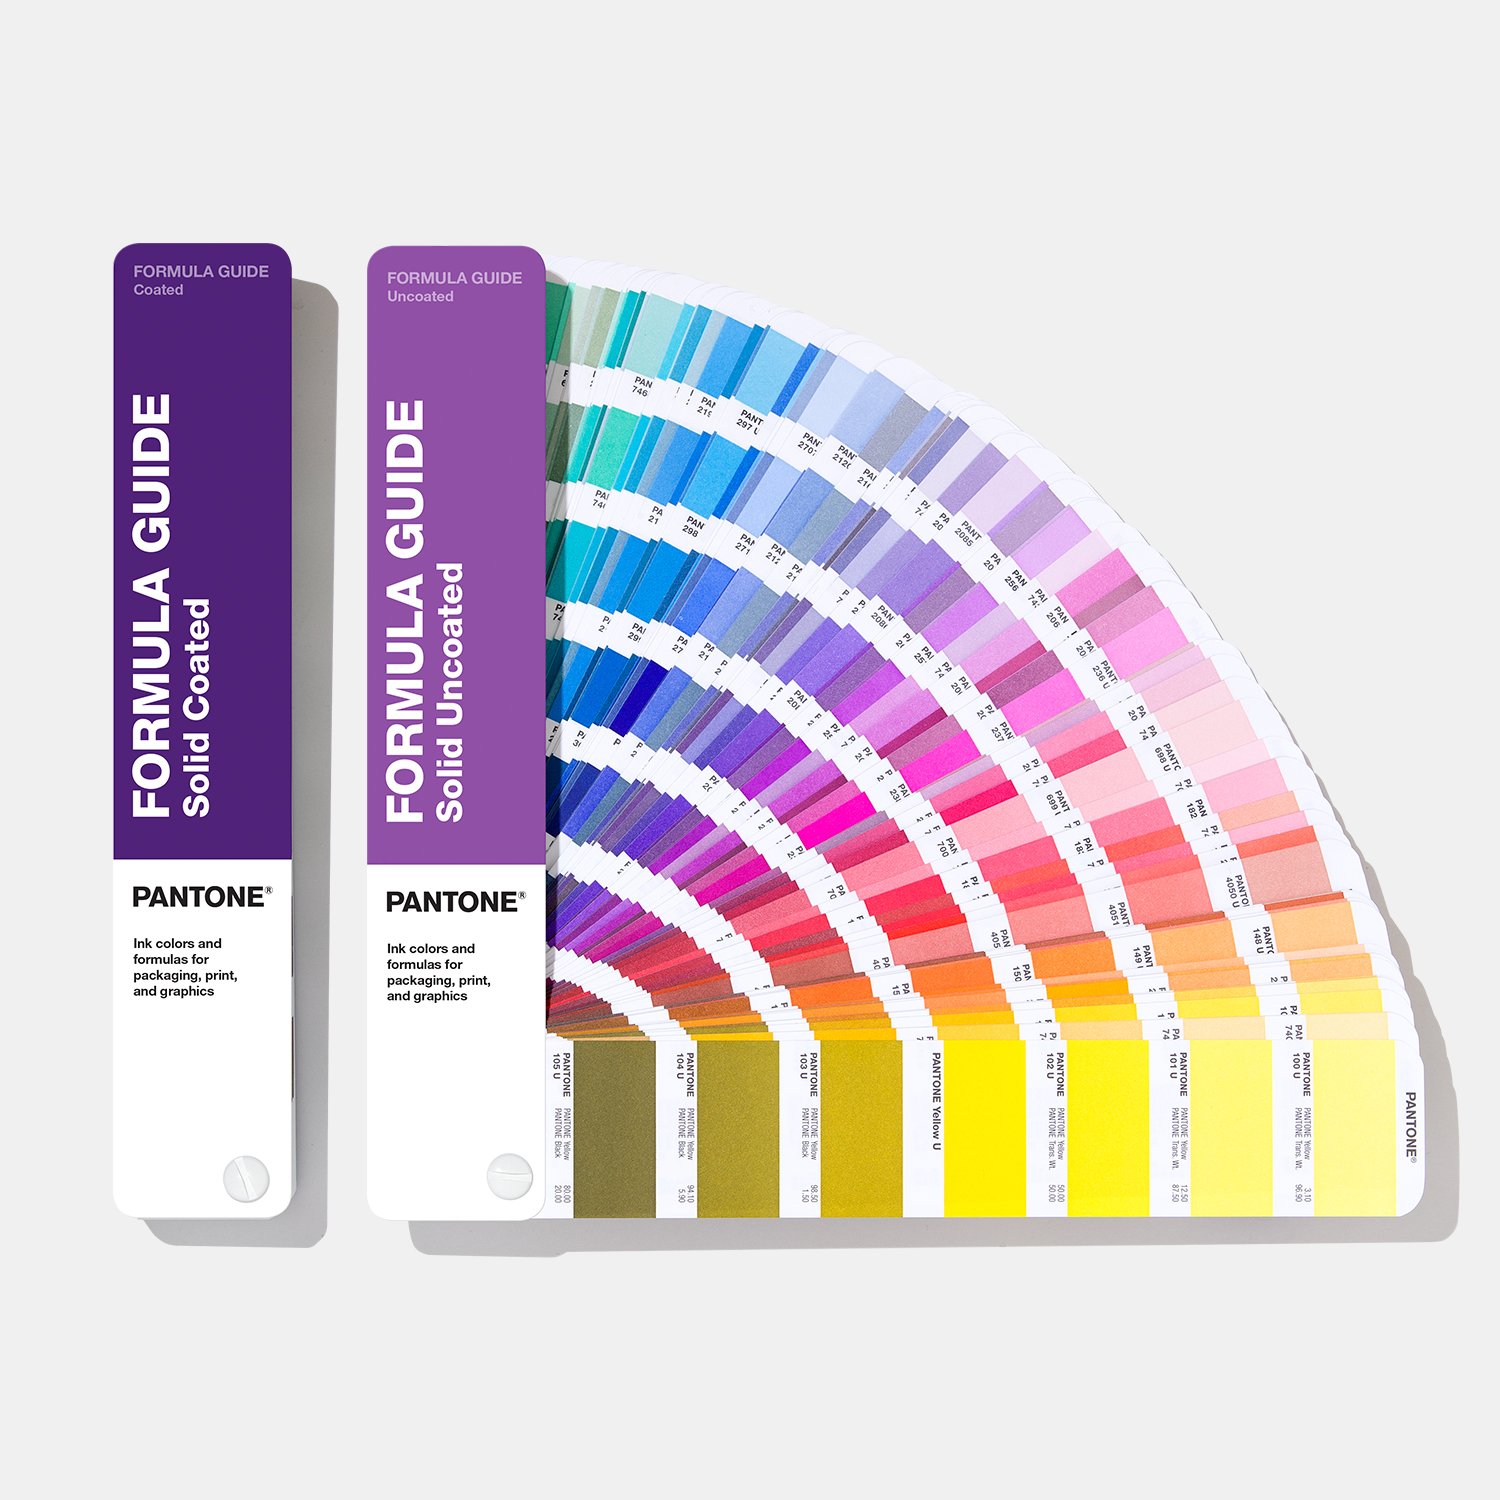 Pantone Formula Guide | Coated & Uncoated